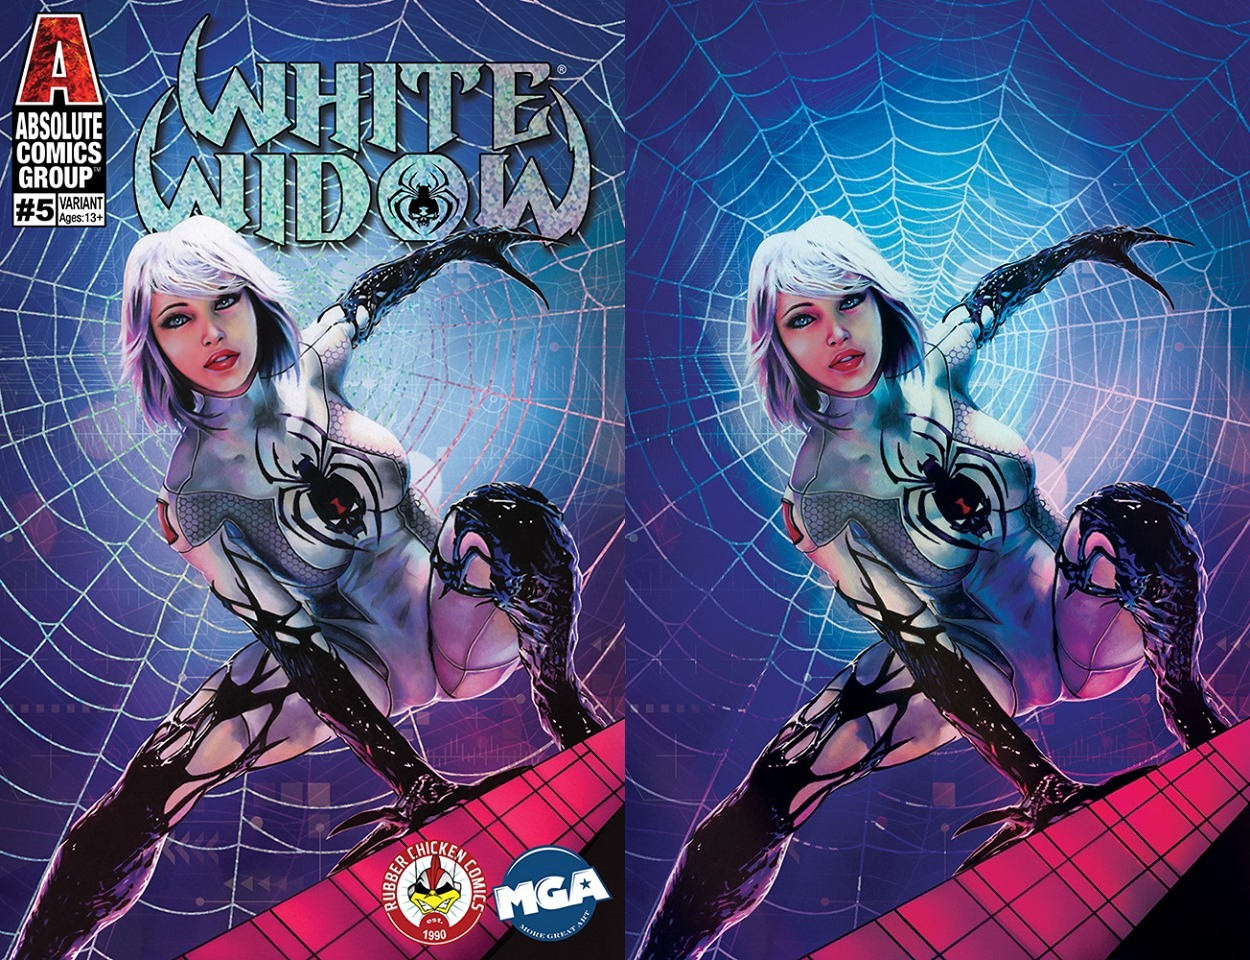 White Widow # 5 Cover A & B